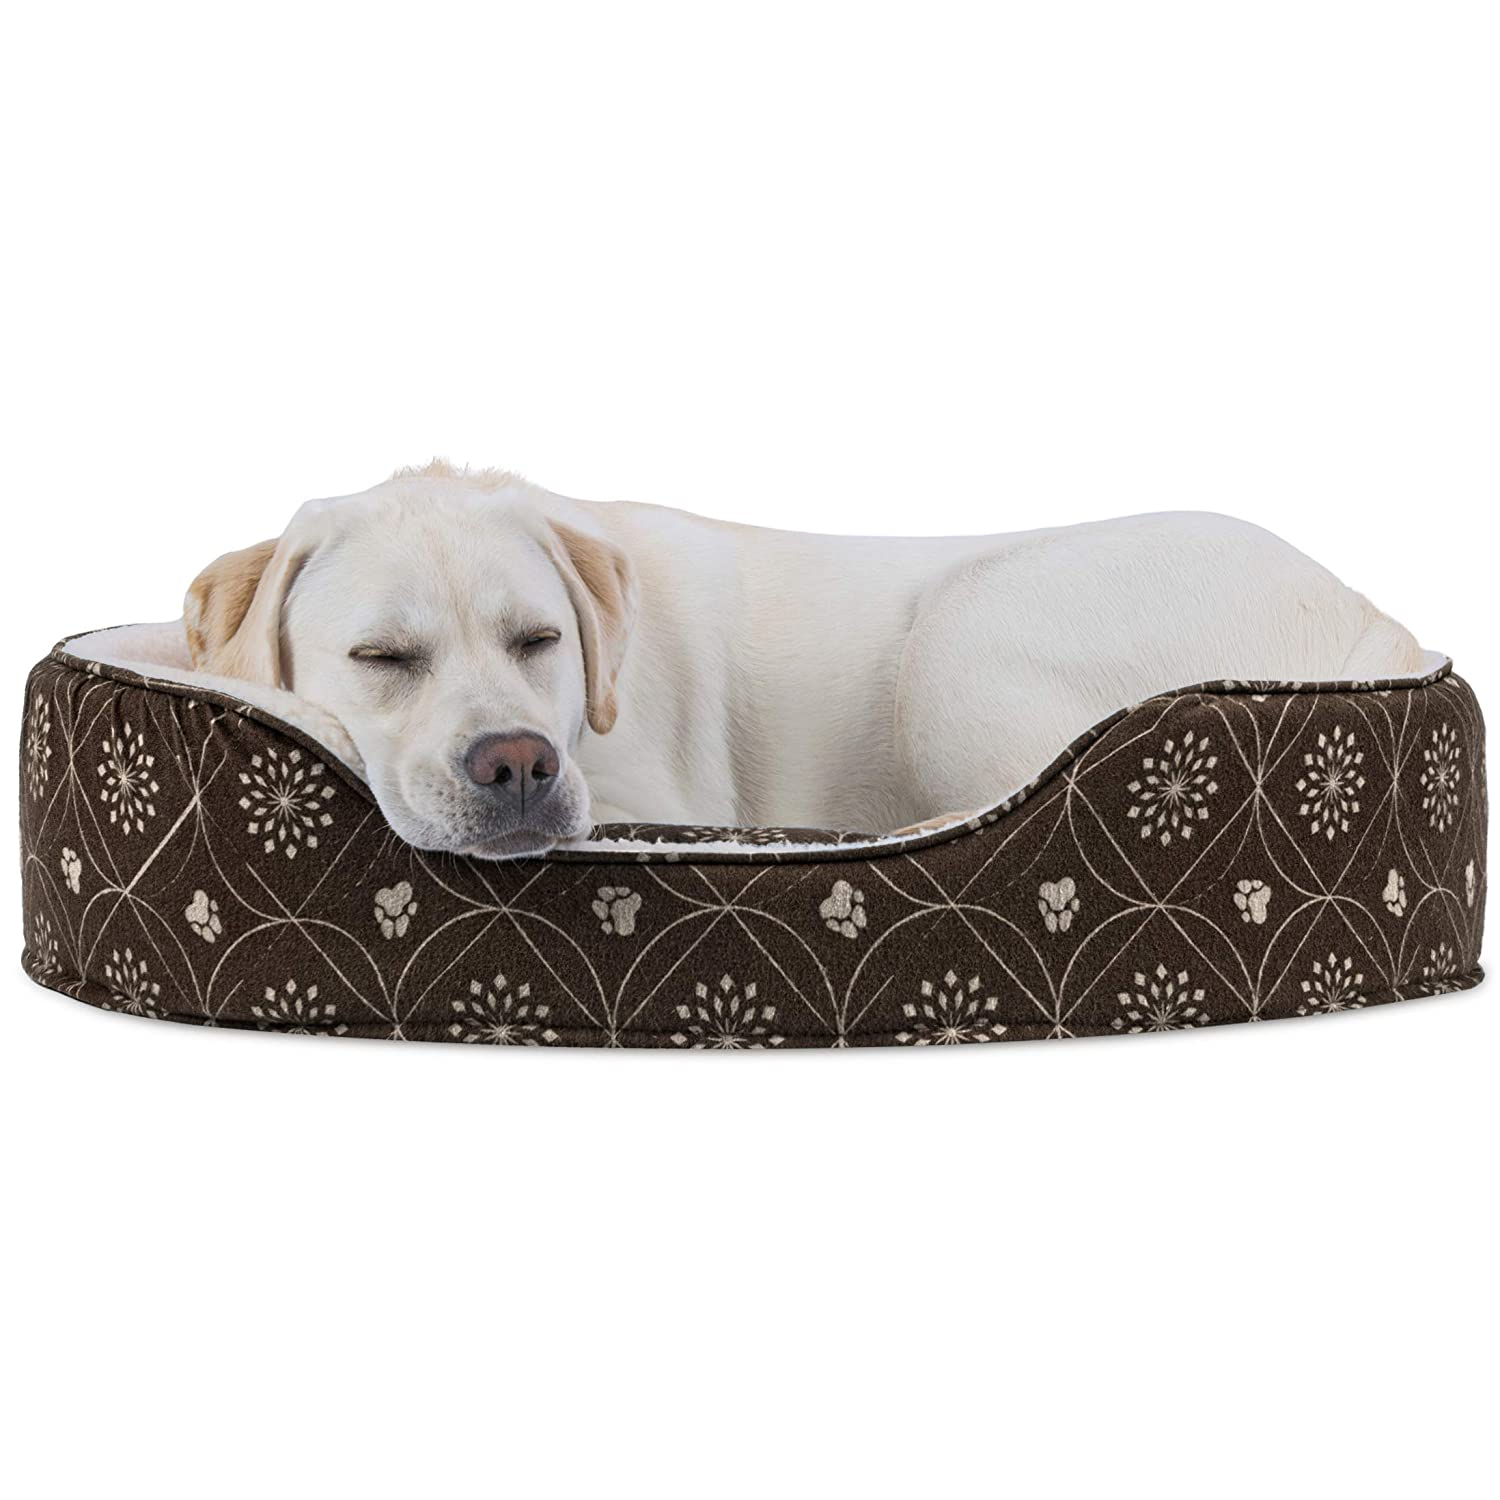 Dark Espresso X-Large Dark Espresso X-Large FurHaven Pet Dog Bed   Print Flannel Oval Pet Bed for Dogs & Cats, Dark Espresso, X-Large